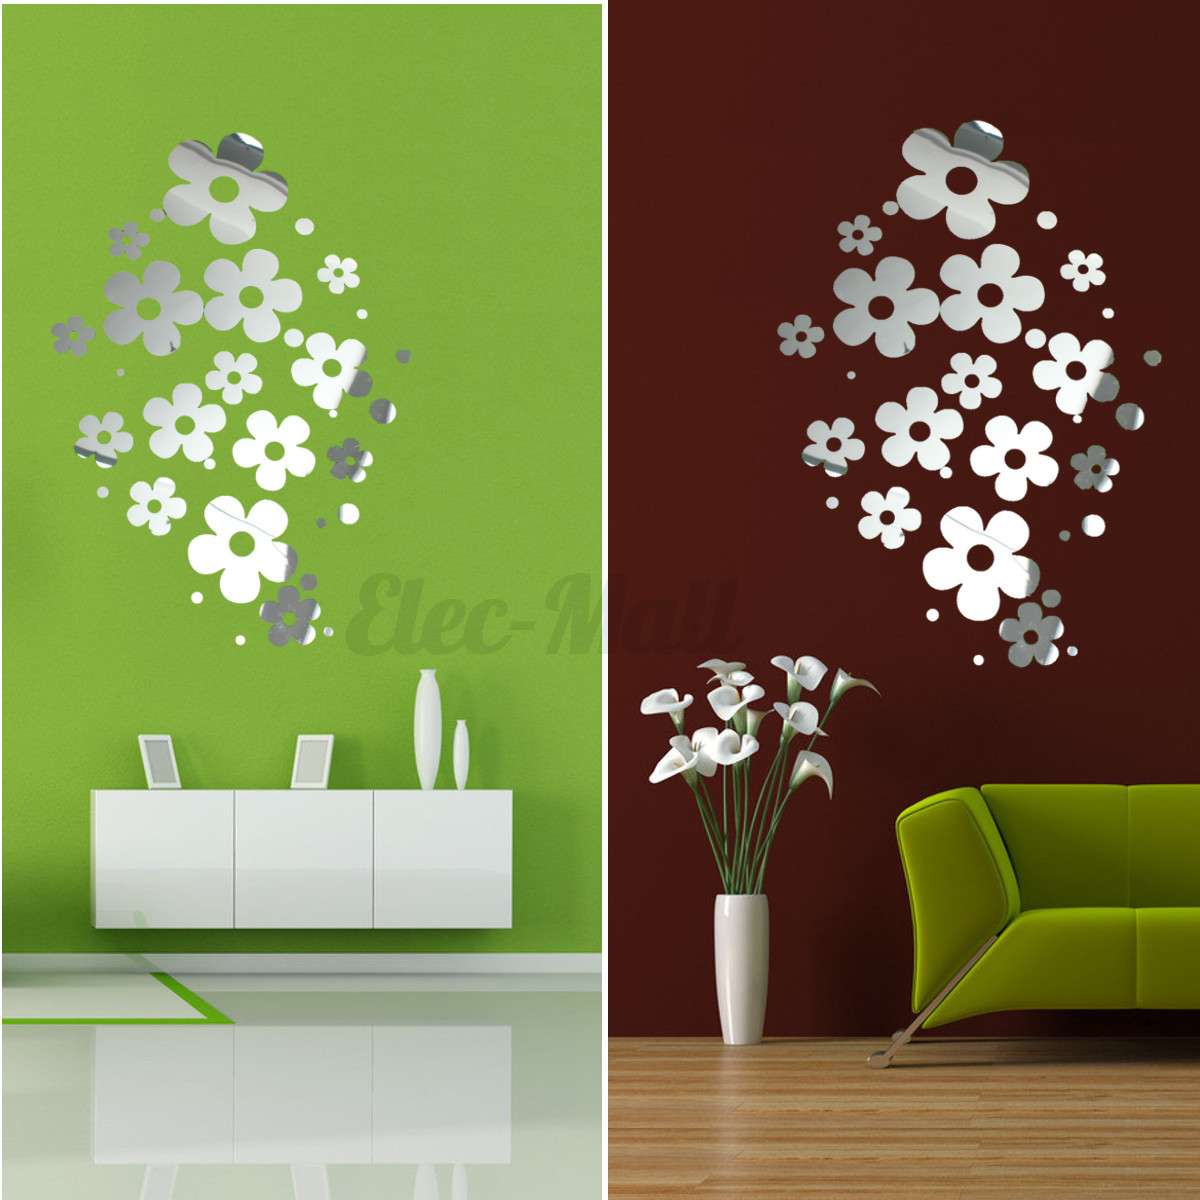 Removable diy 3d mirror surface wall stickers mural art for 3d room decor